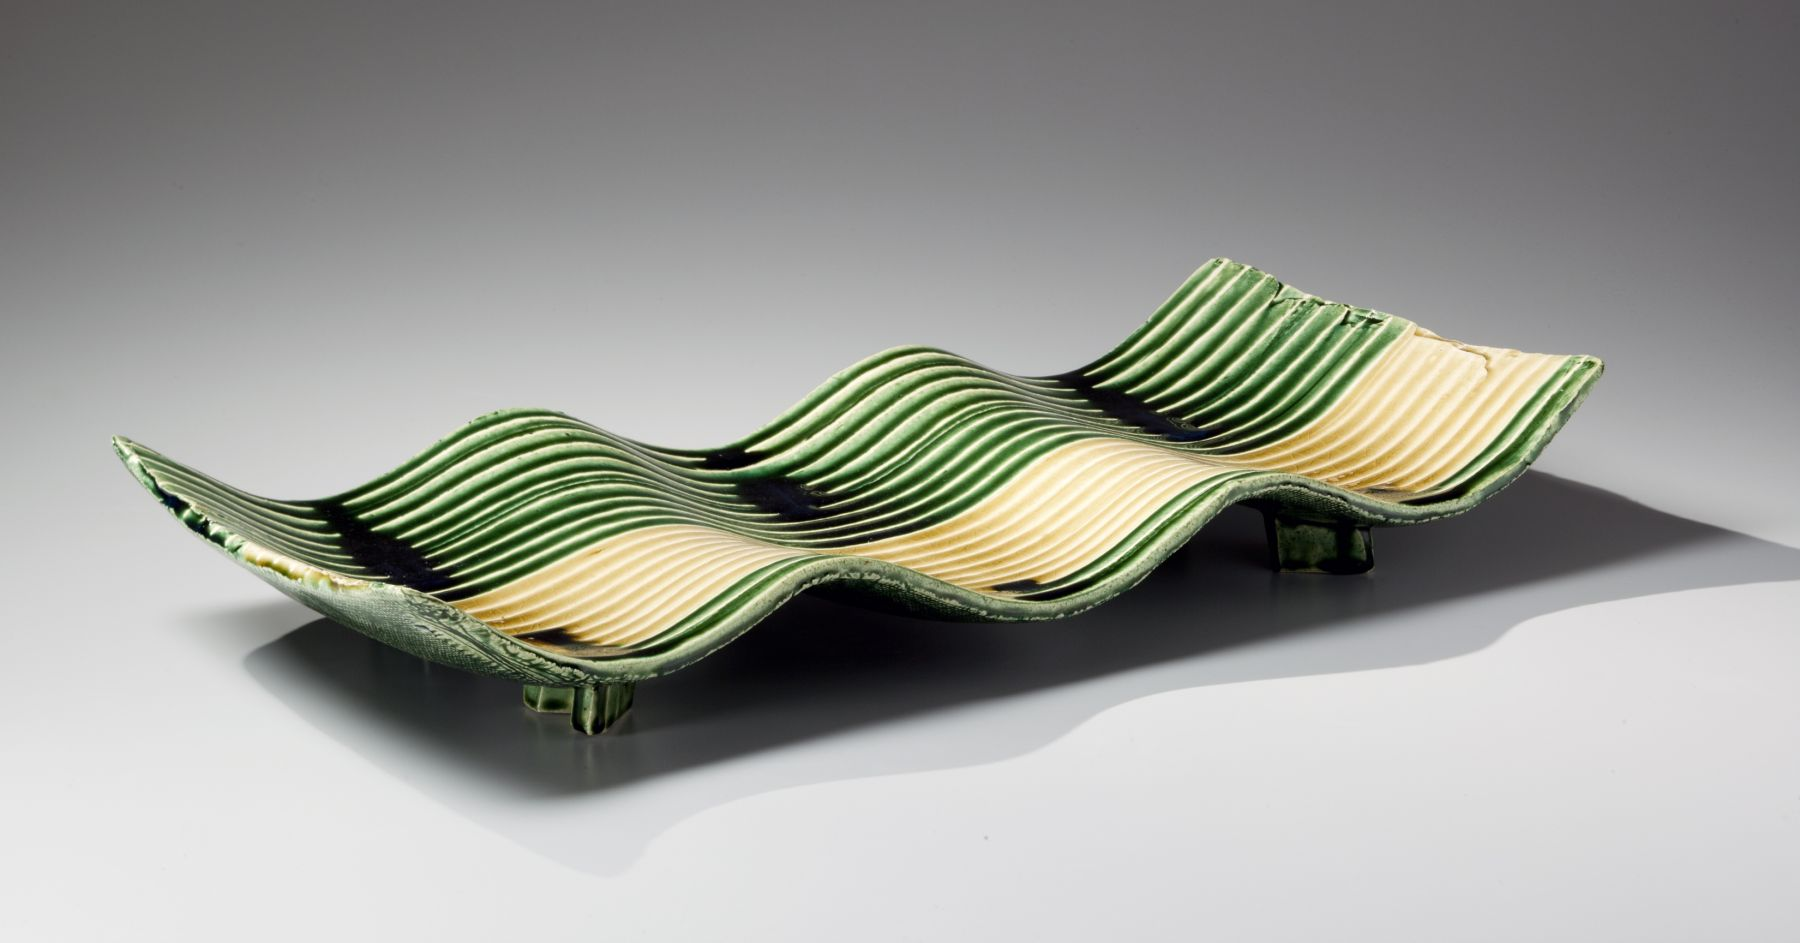 Suzuki Tetsu (b. 1964), Undulating rectangular platter with carved horizontal linear stripes covered with pooling green and yellow glazes